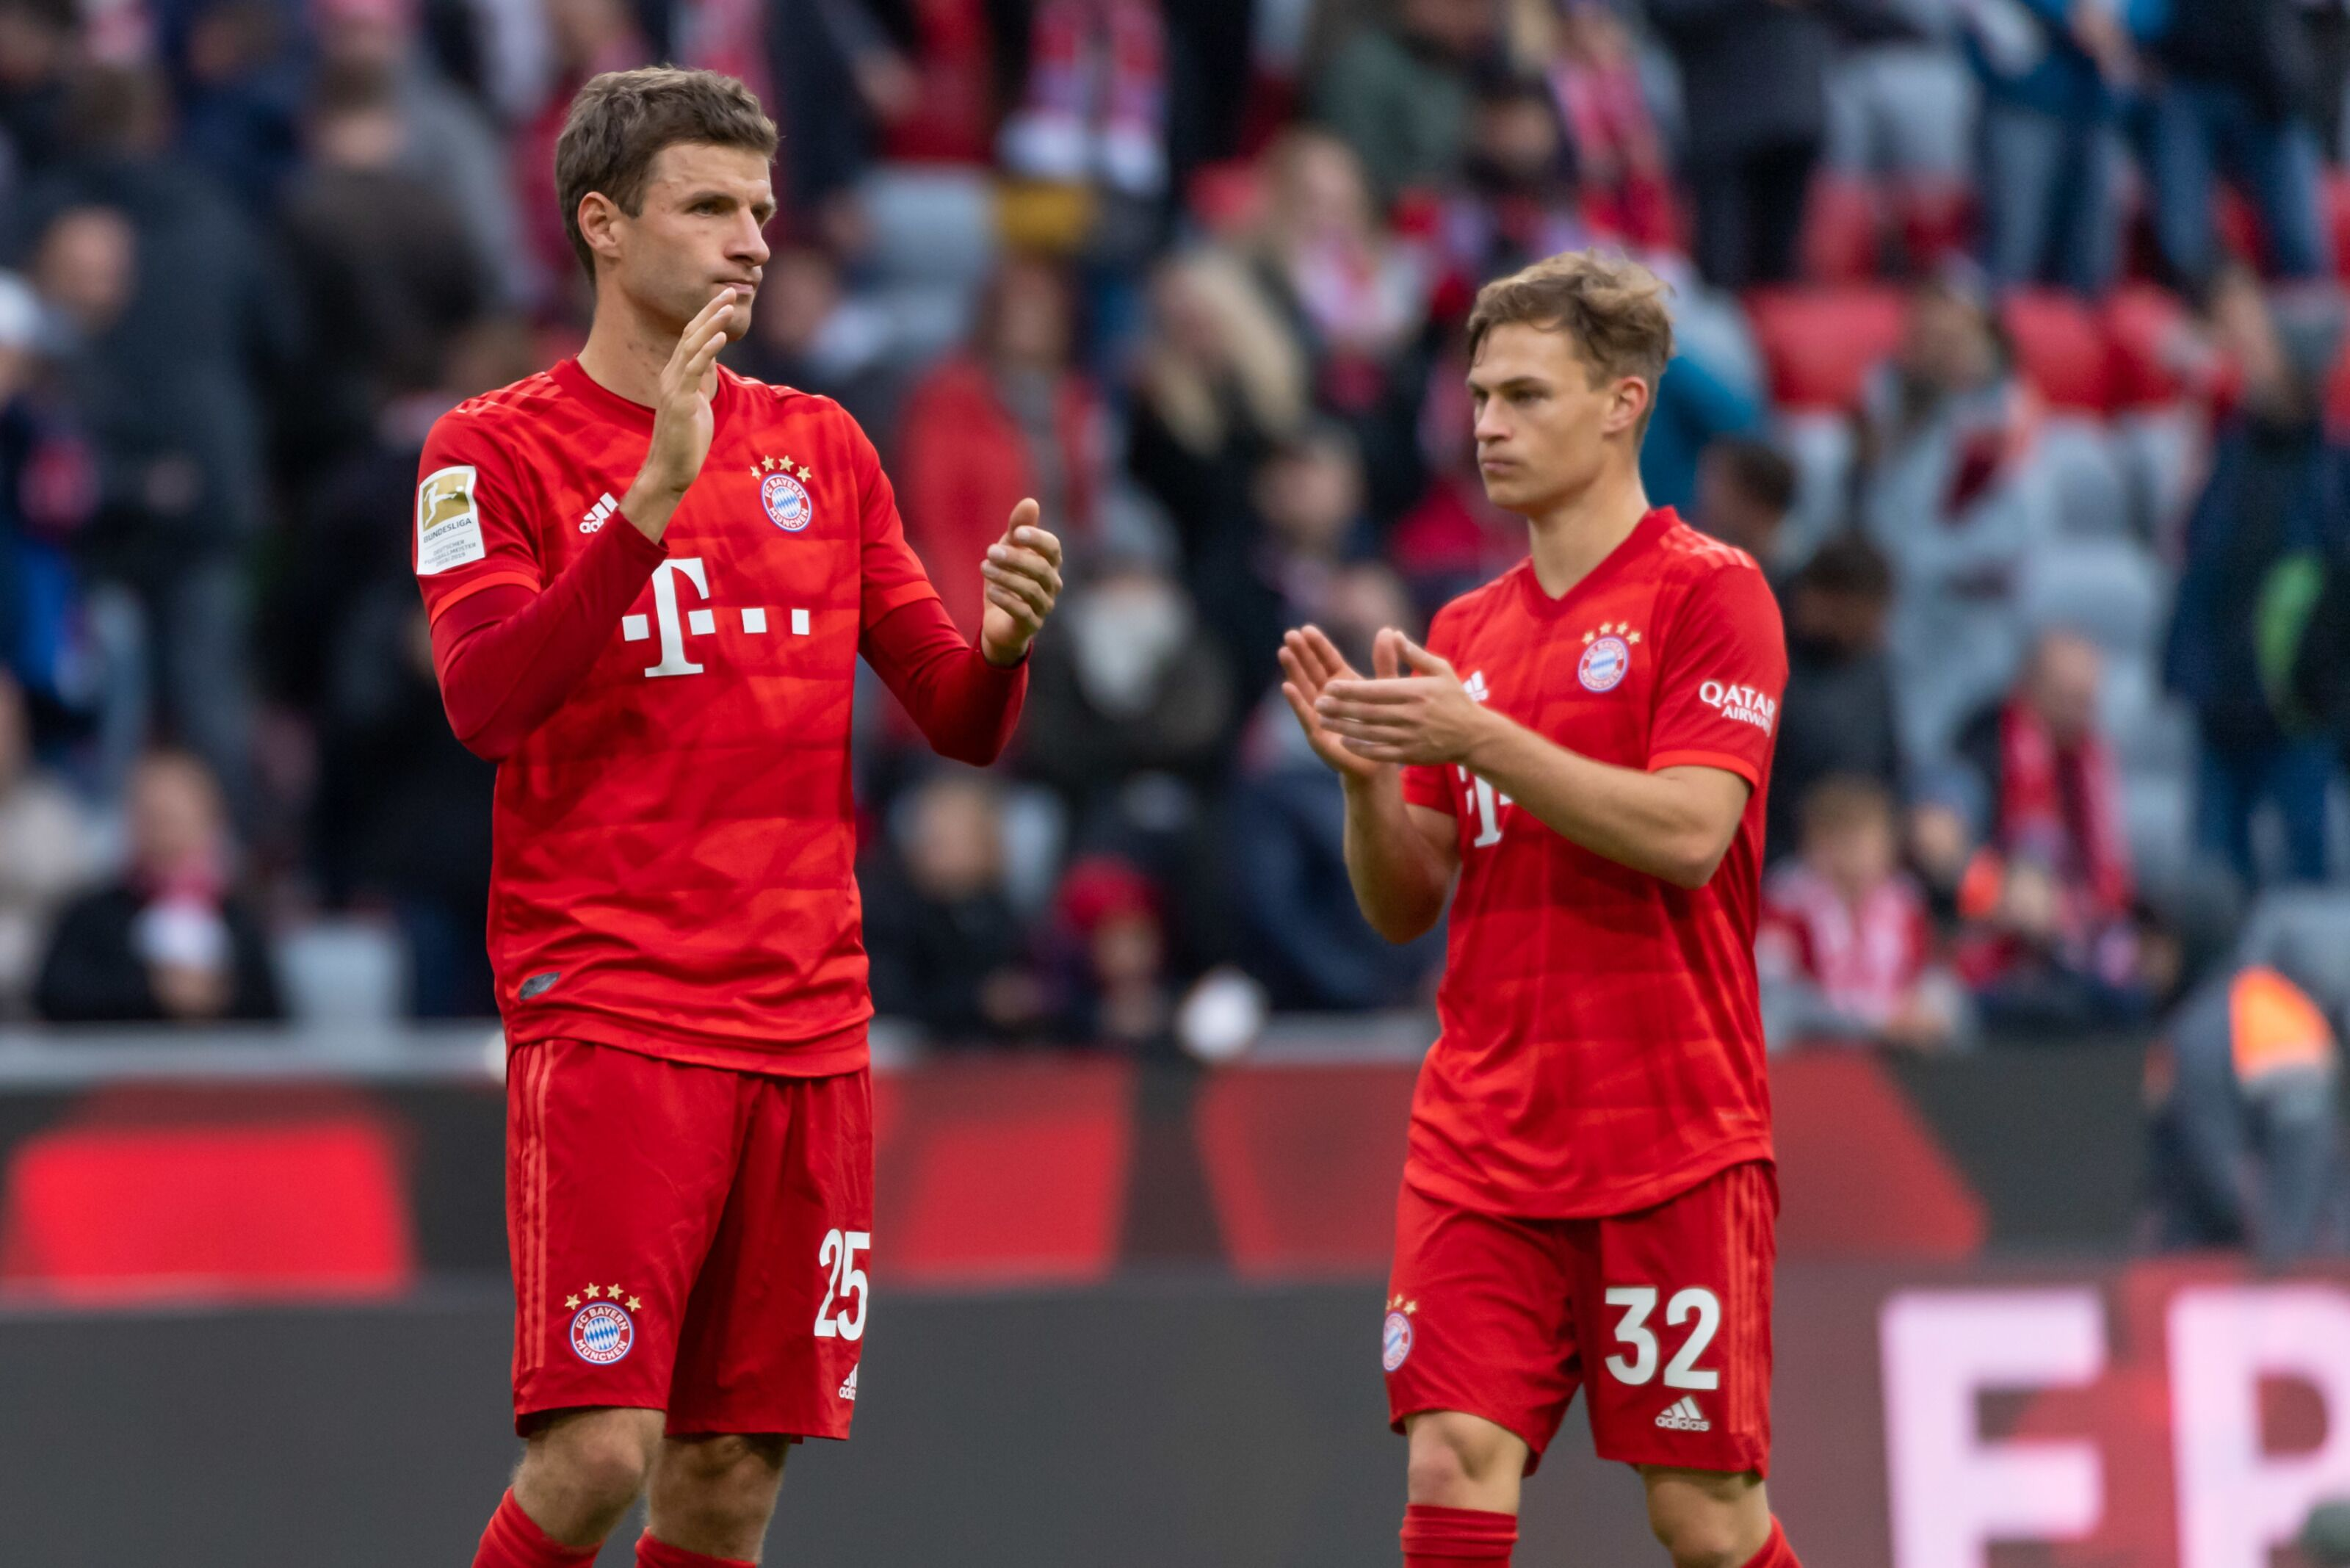 Bayern Munich without Thomas Muller is unimaginable, says Joshua Kimmich